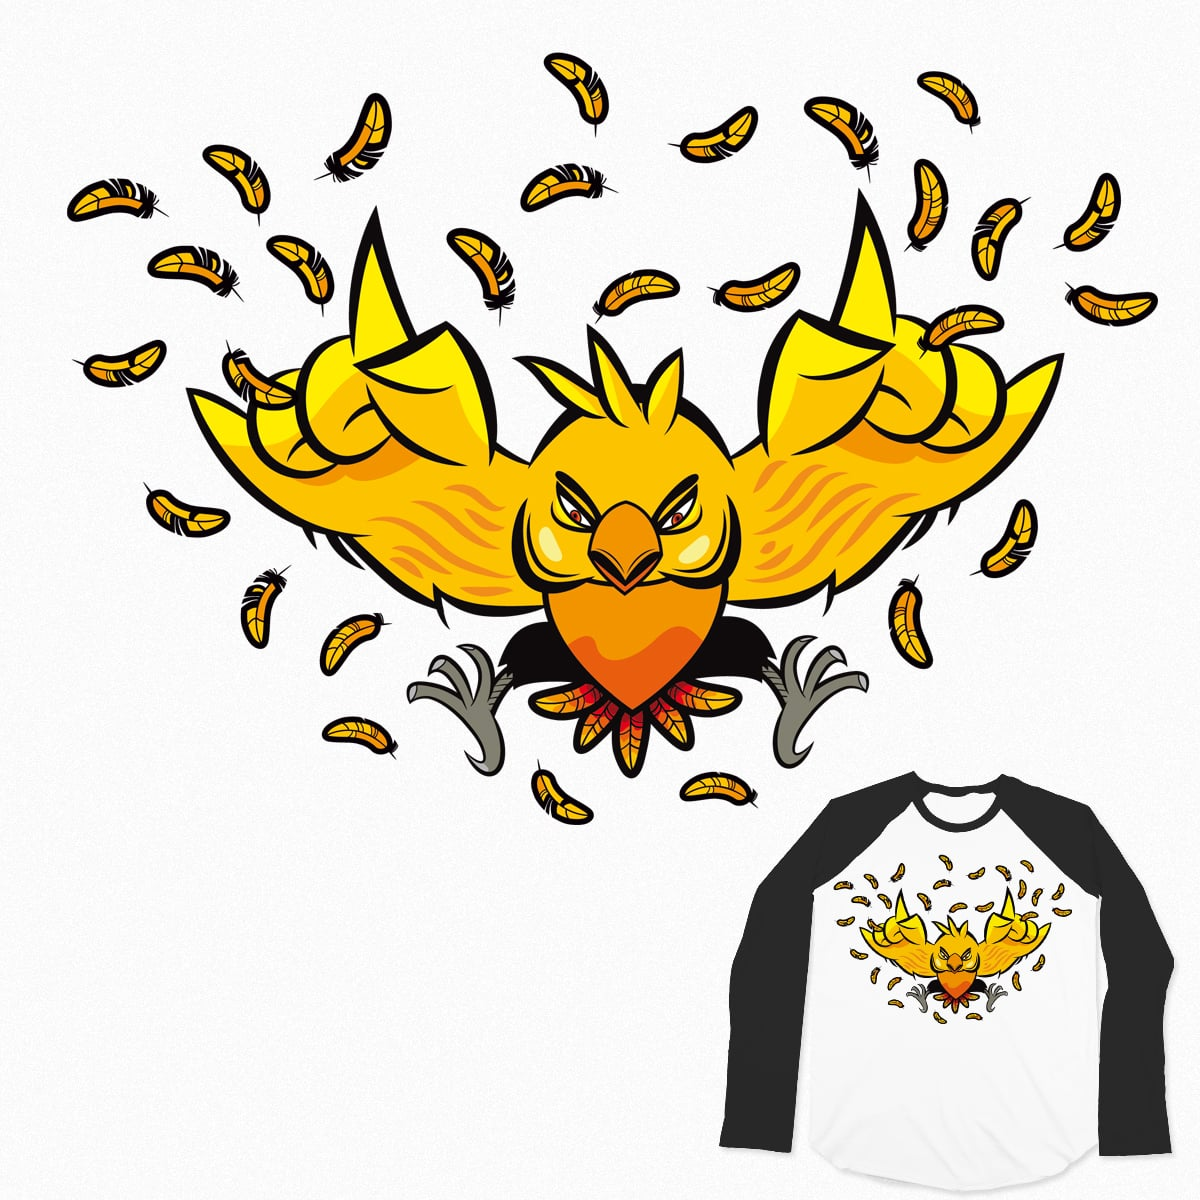 canary by deadsquirrel on Threadless